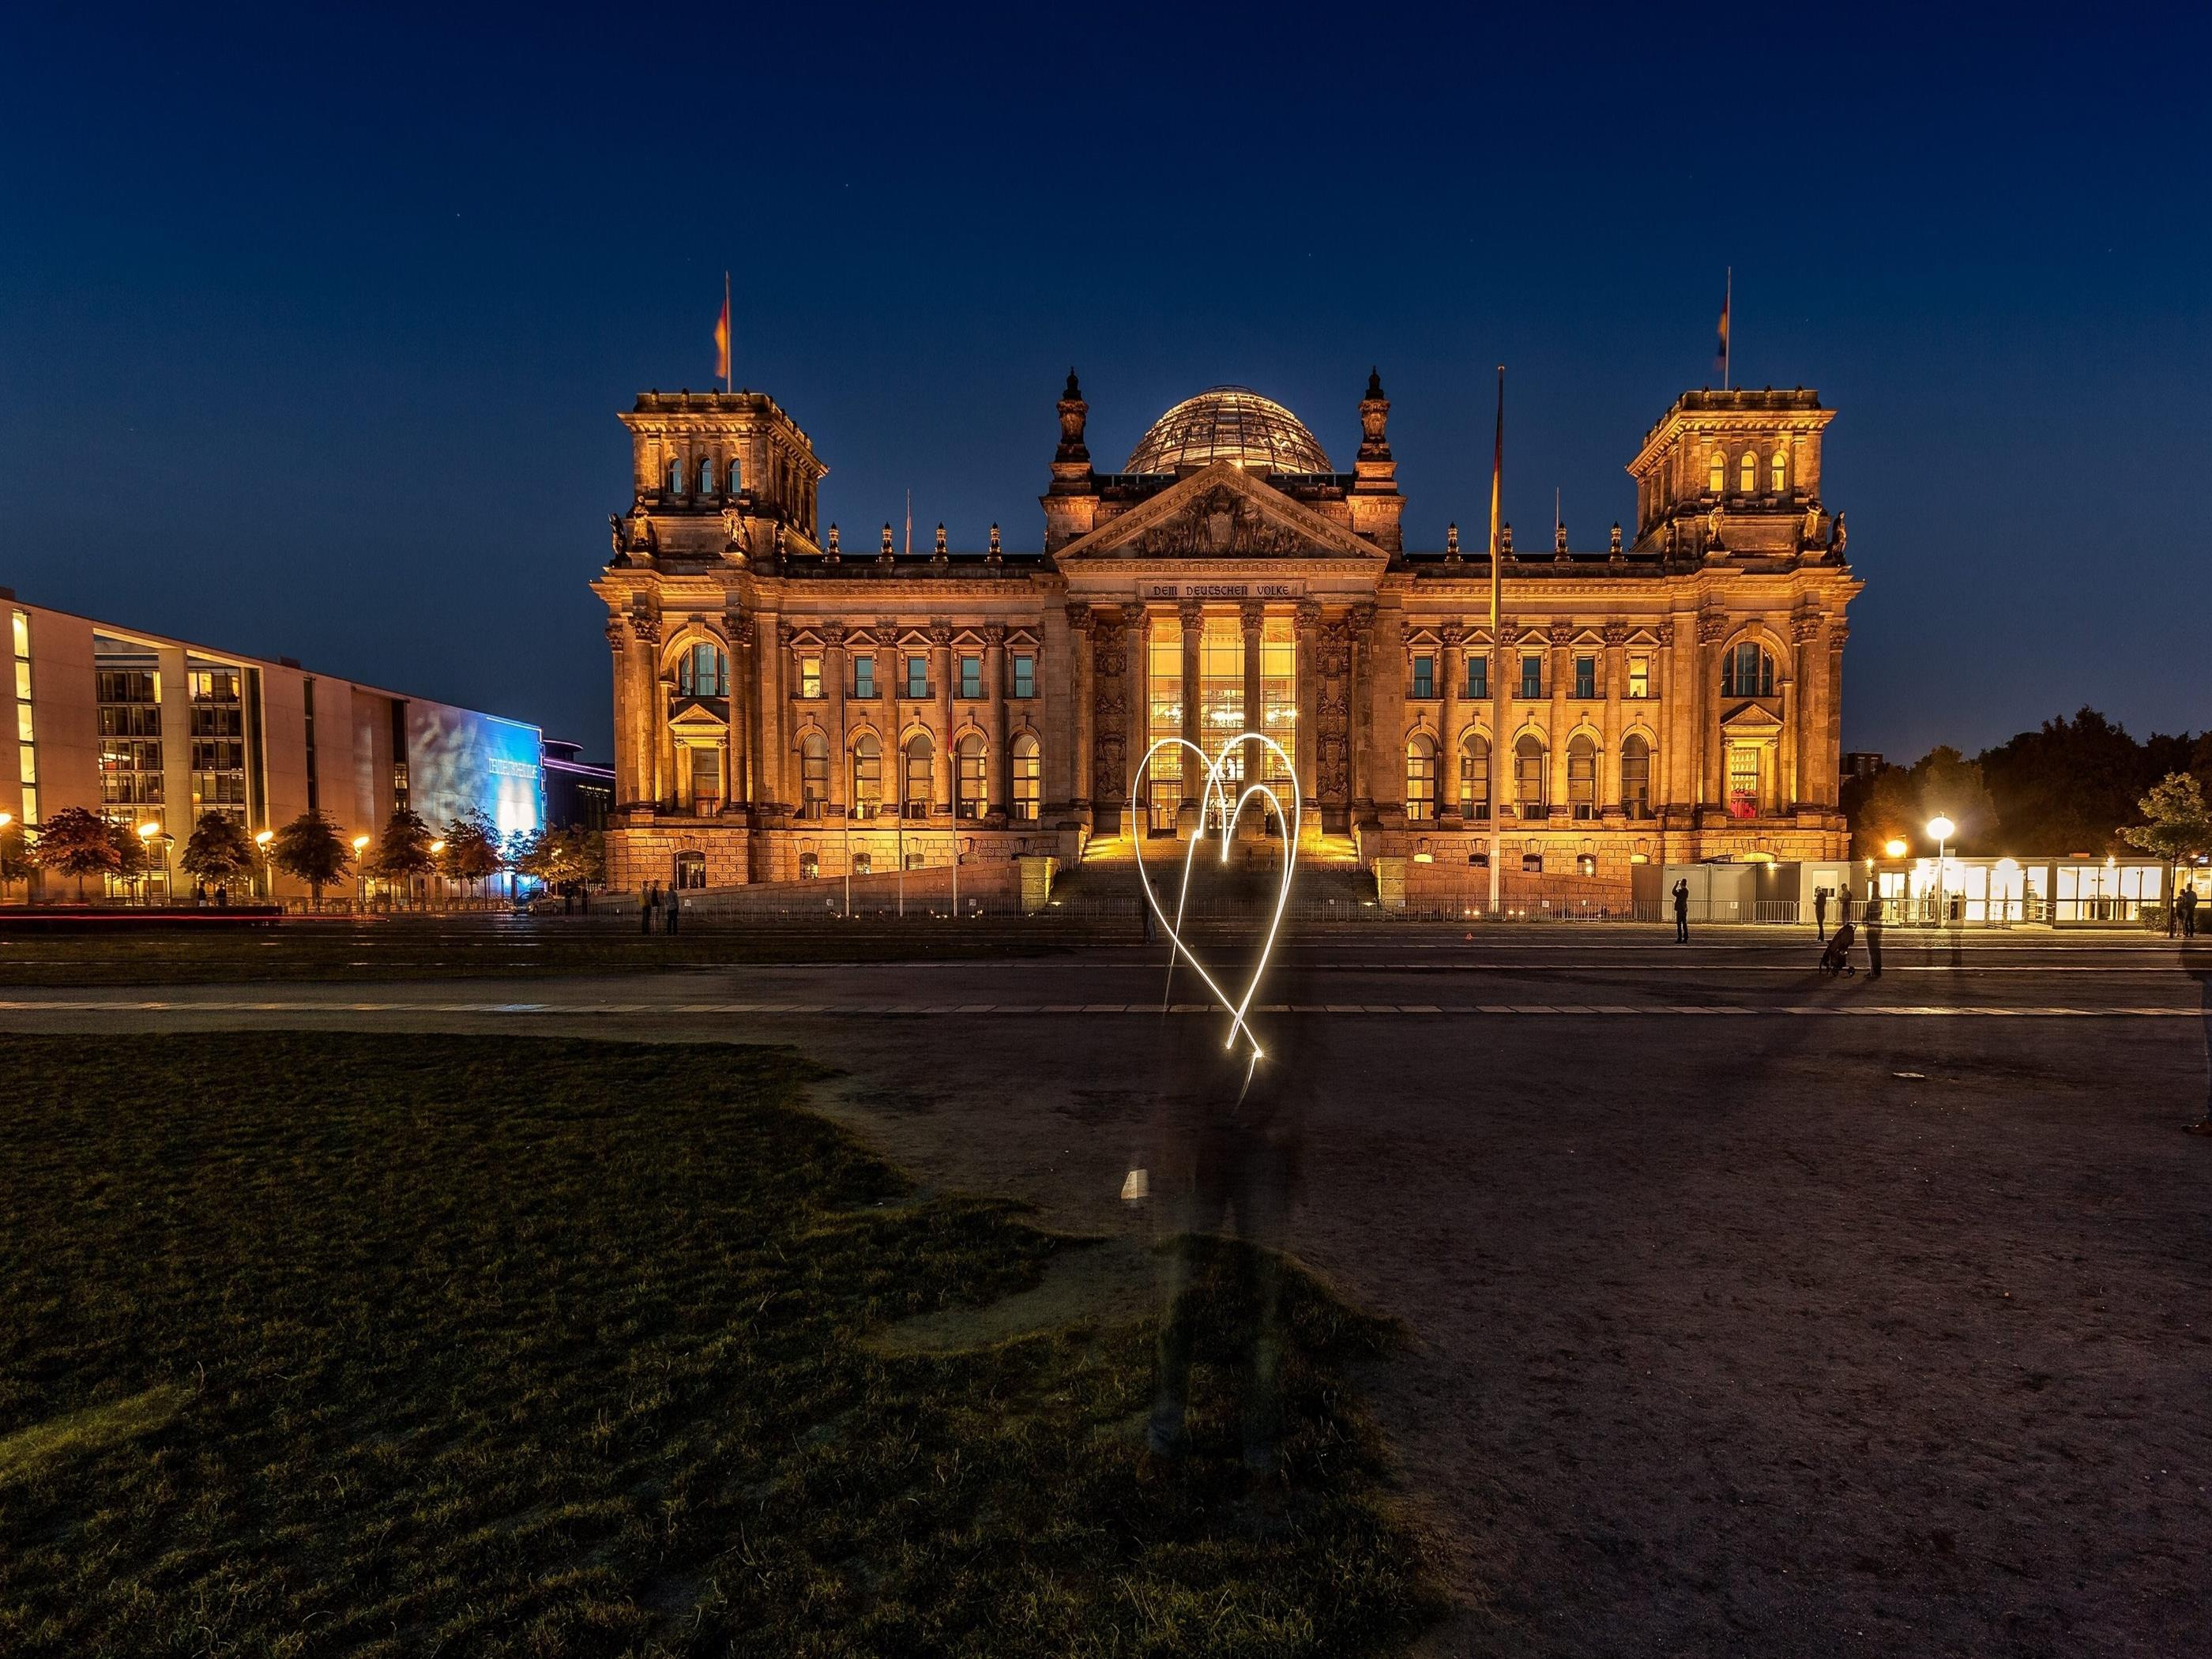 2800x2100 Reichstag Building at Night in Berlin Germany Wallpaper